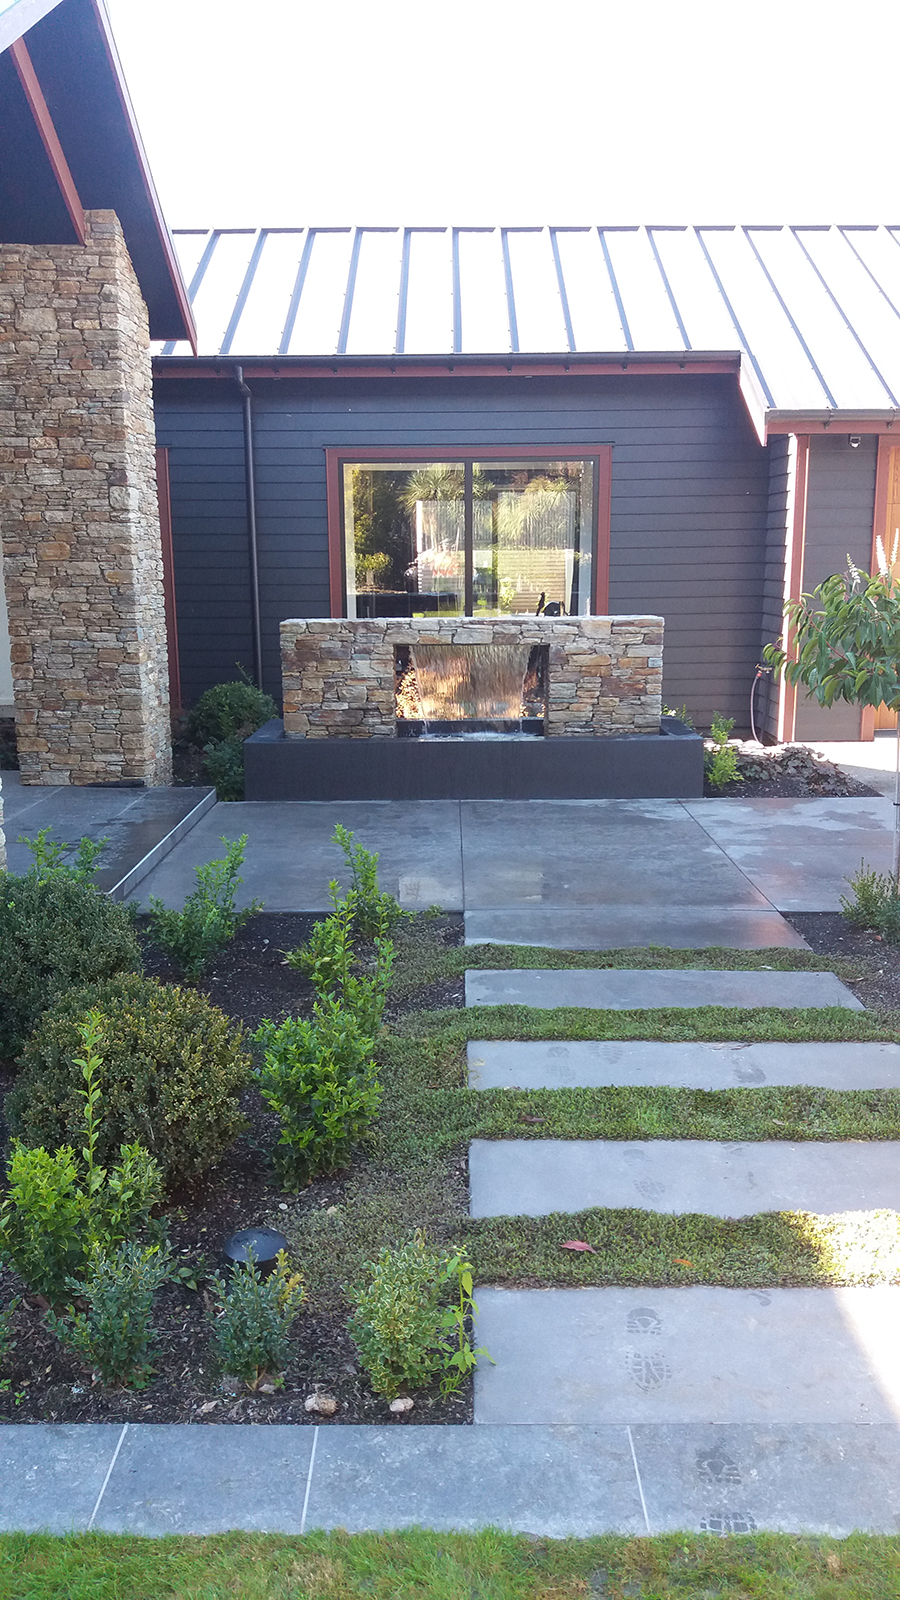 Landscape design construction landscaping canterbury for Gunn design landscape architecture christchurch